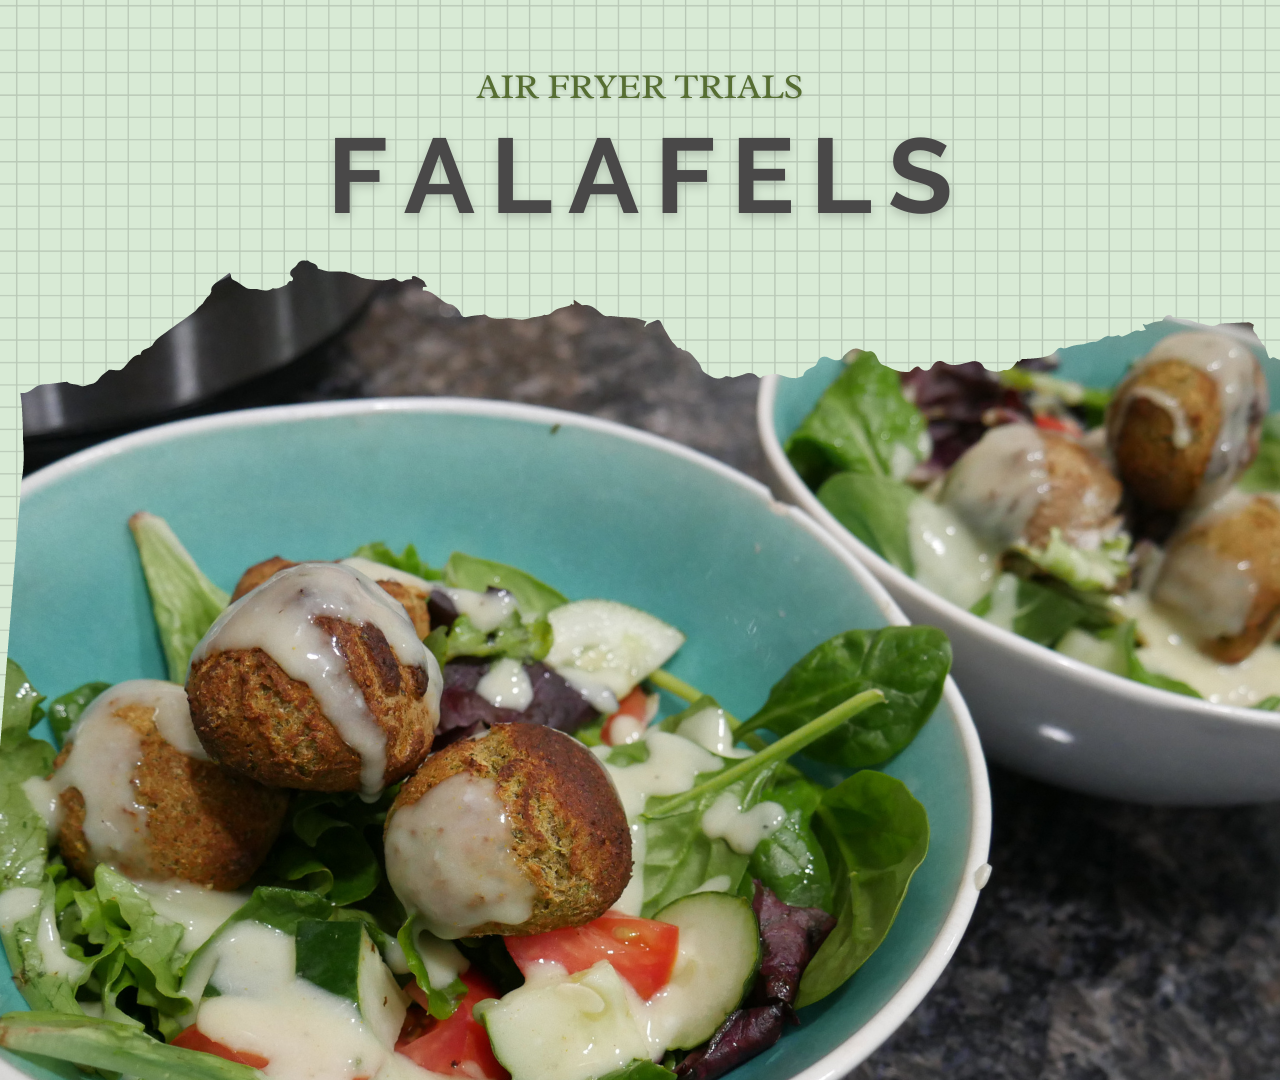 Falafels Recipe: An Air Fryer Trial